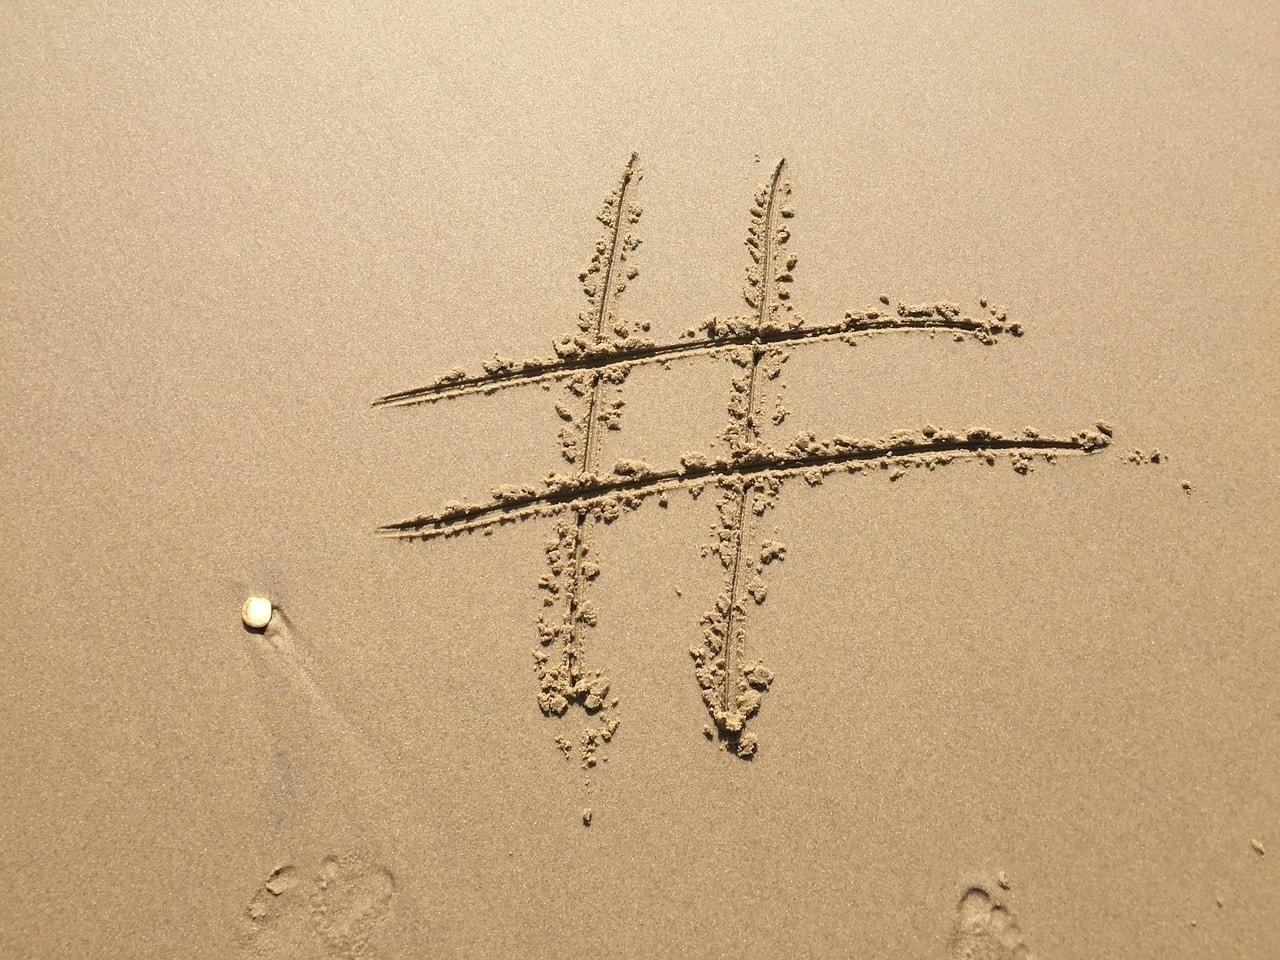 Usage of hashtags